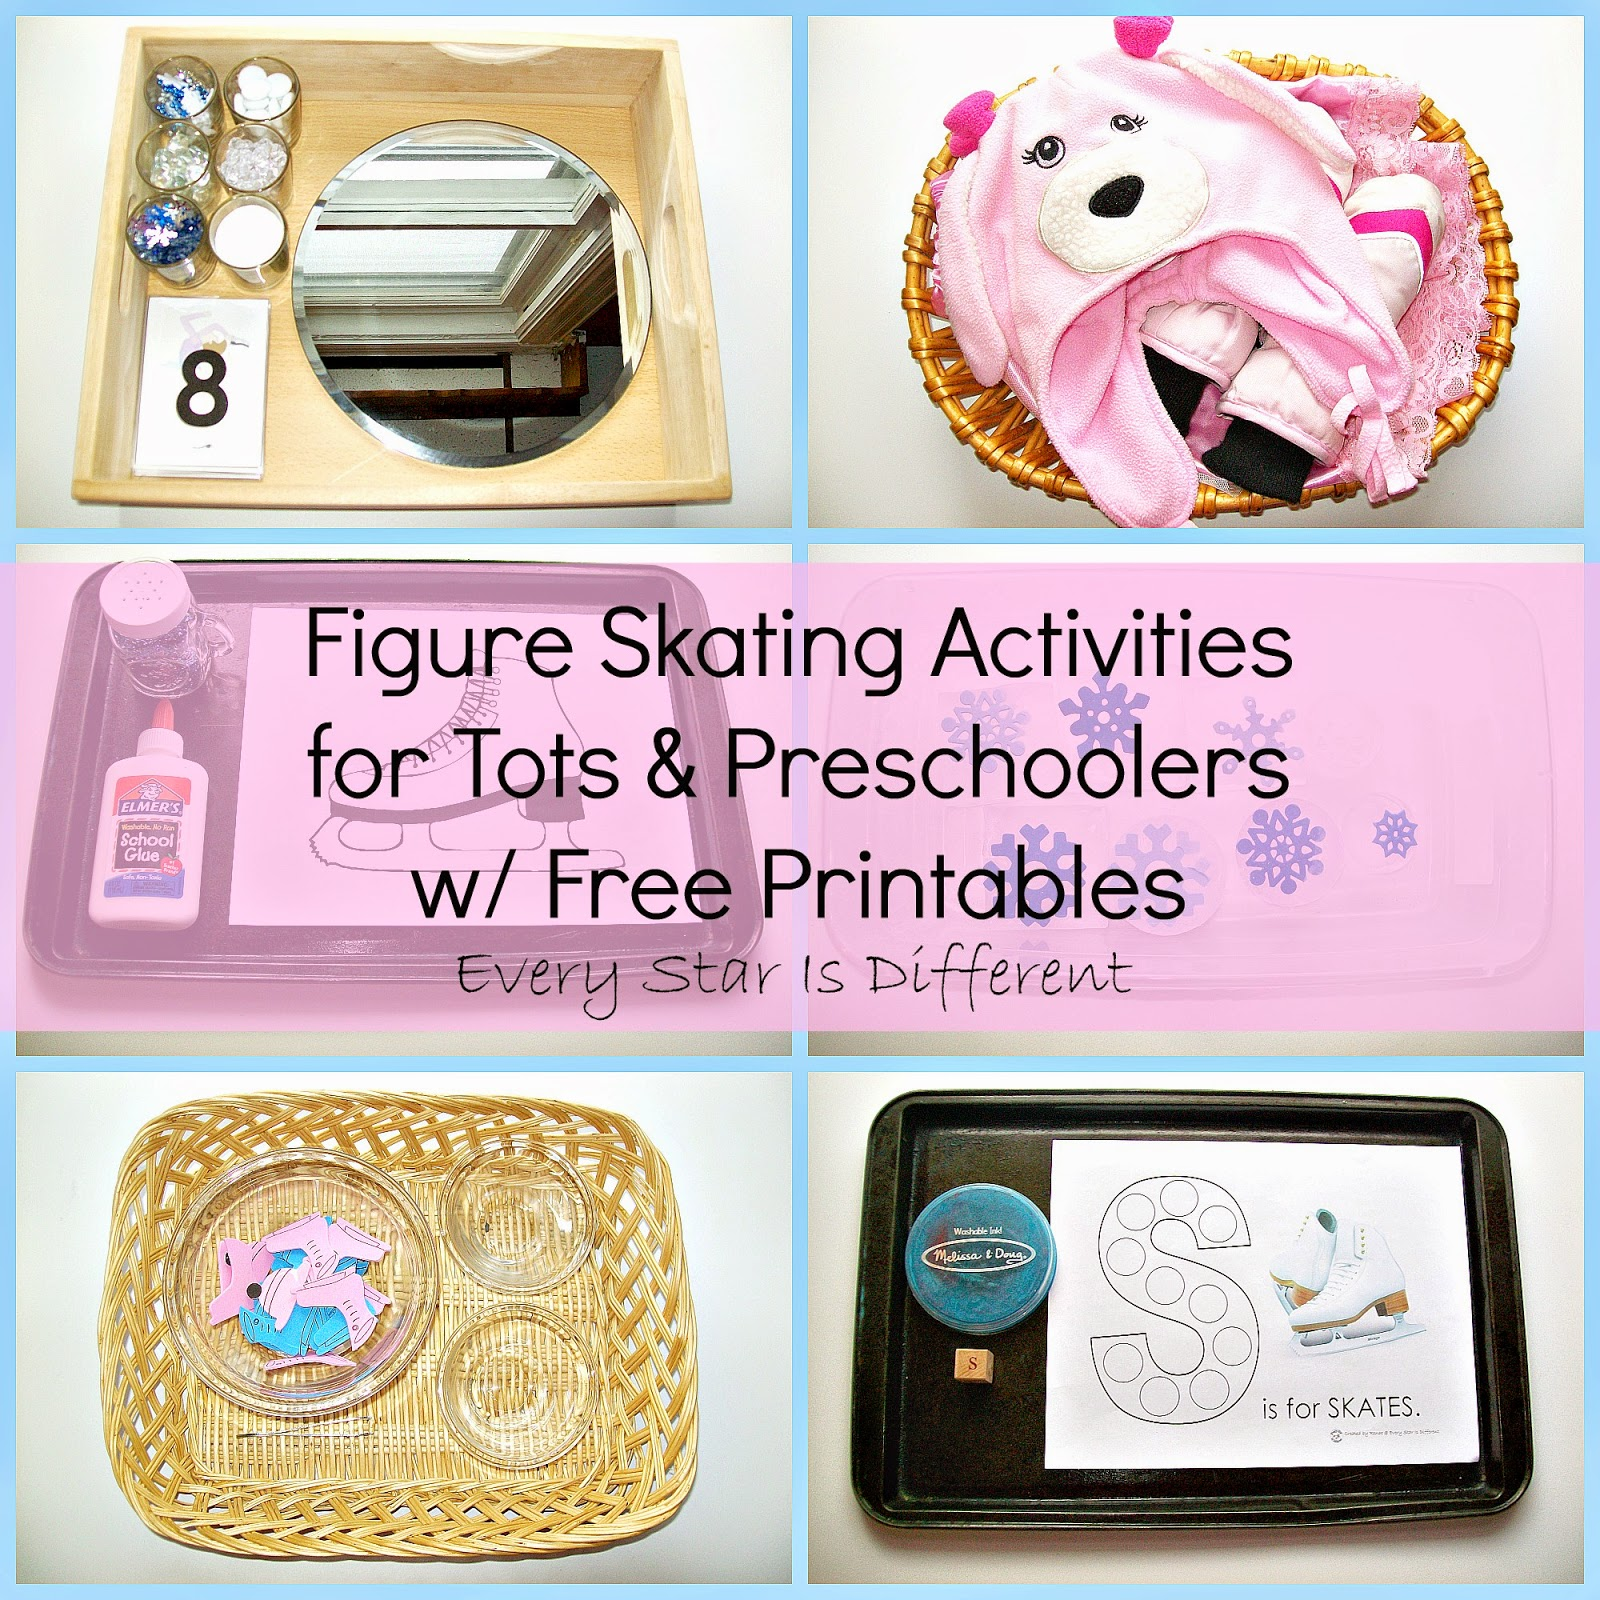 Figure Skating Activities